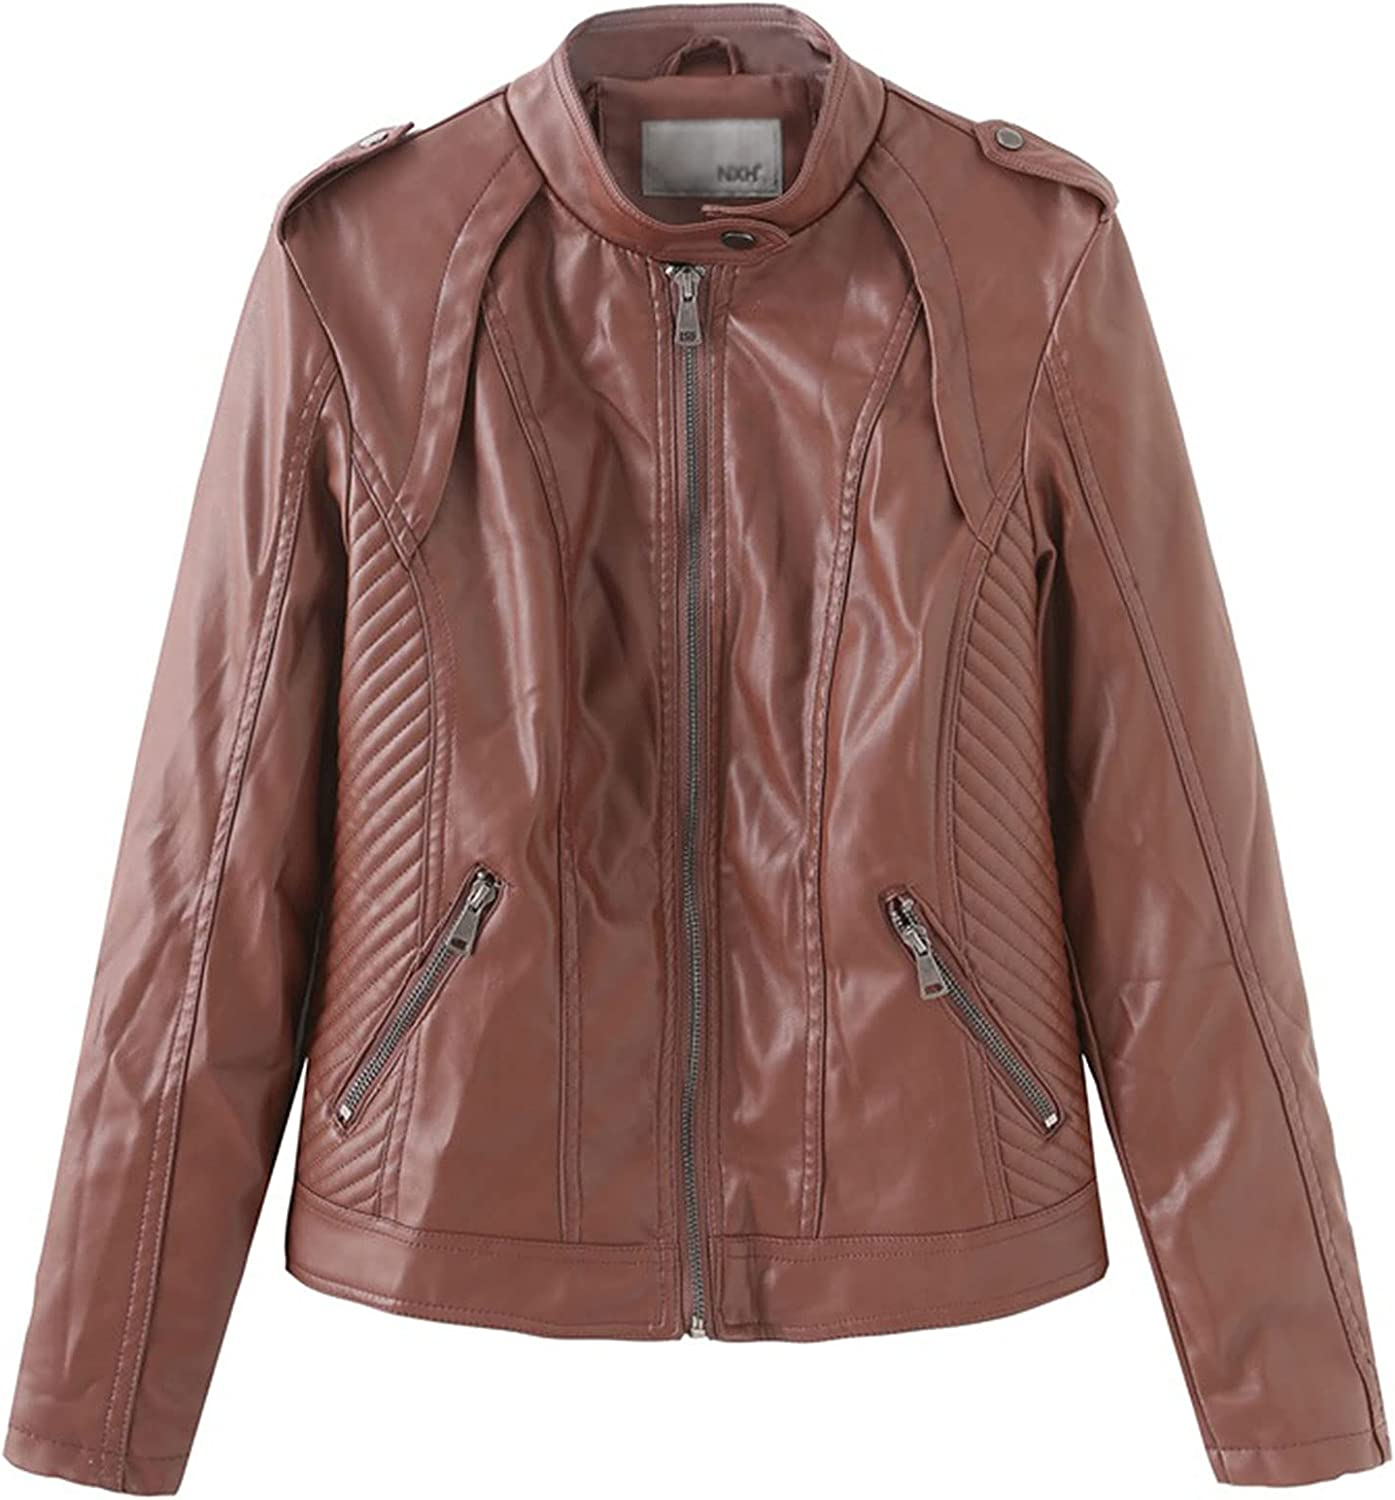 CAICAIL Women's Leather Jacket, Slim-Fit Women's Brown Motorcycle Jackets PU Motorcycle Coat, Zip Up Female Outwear